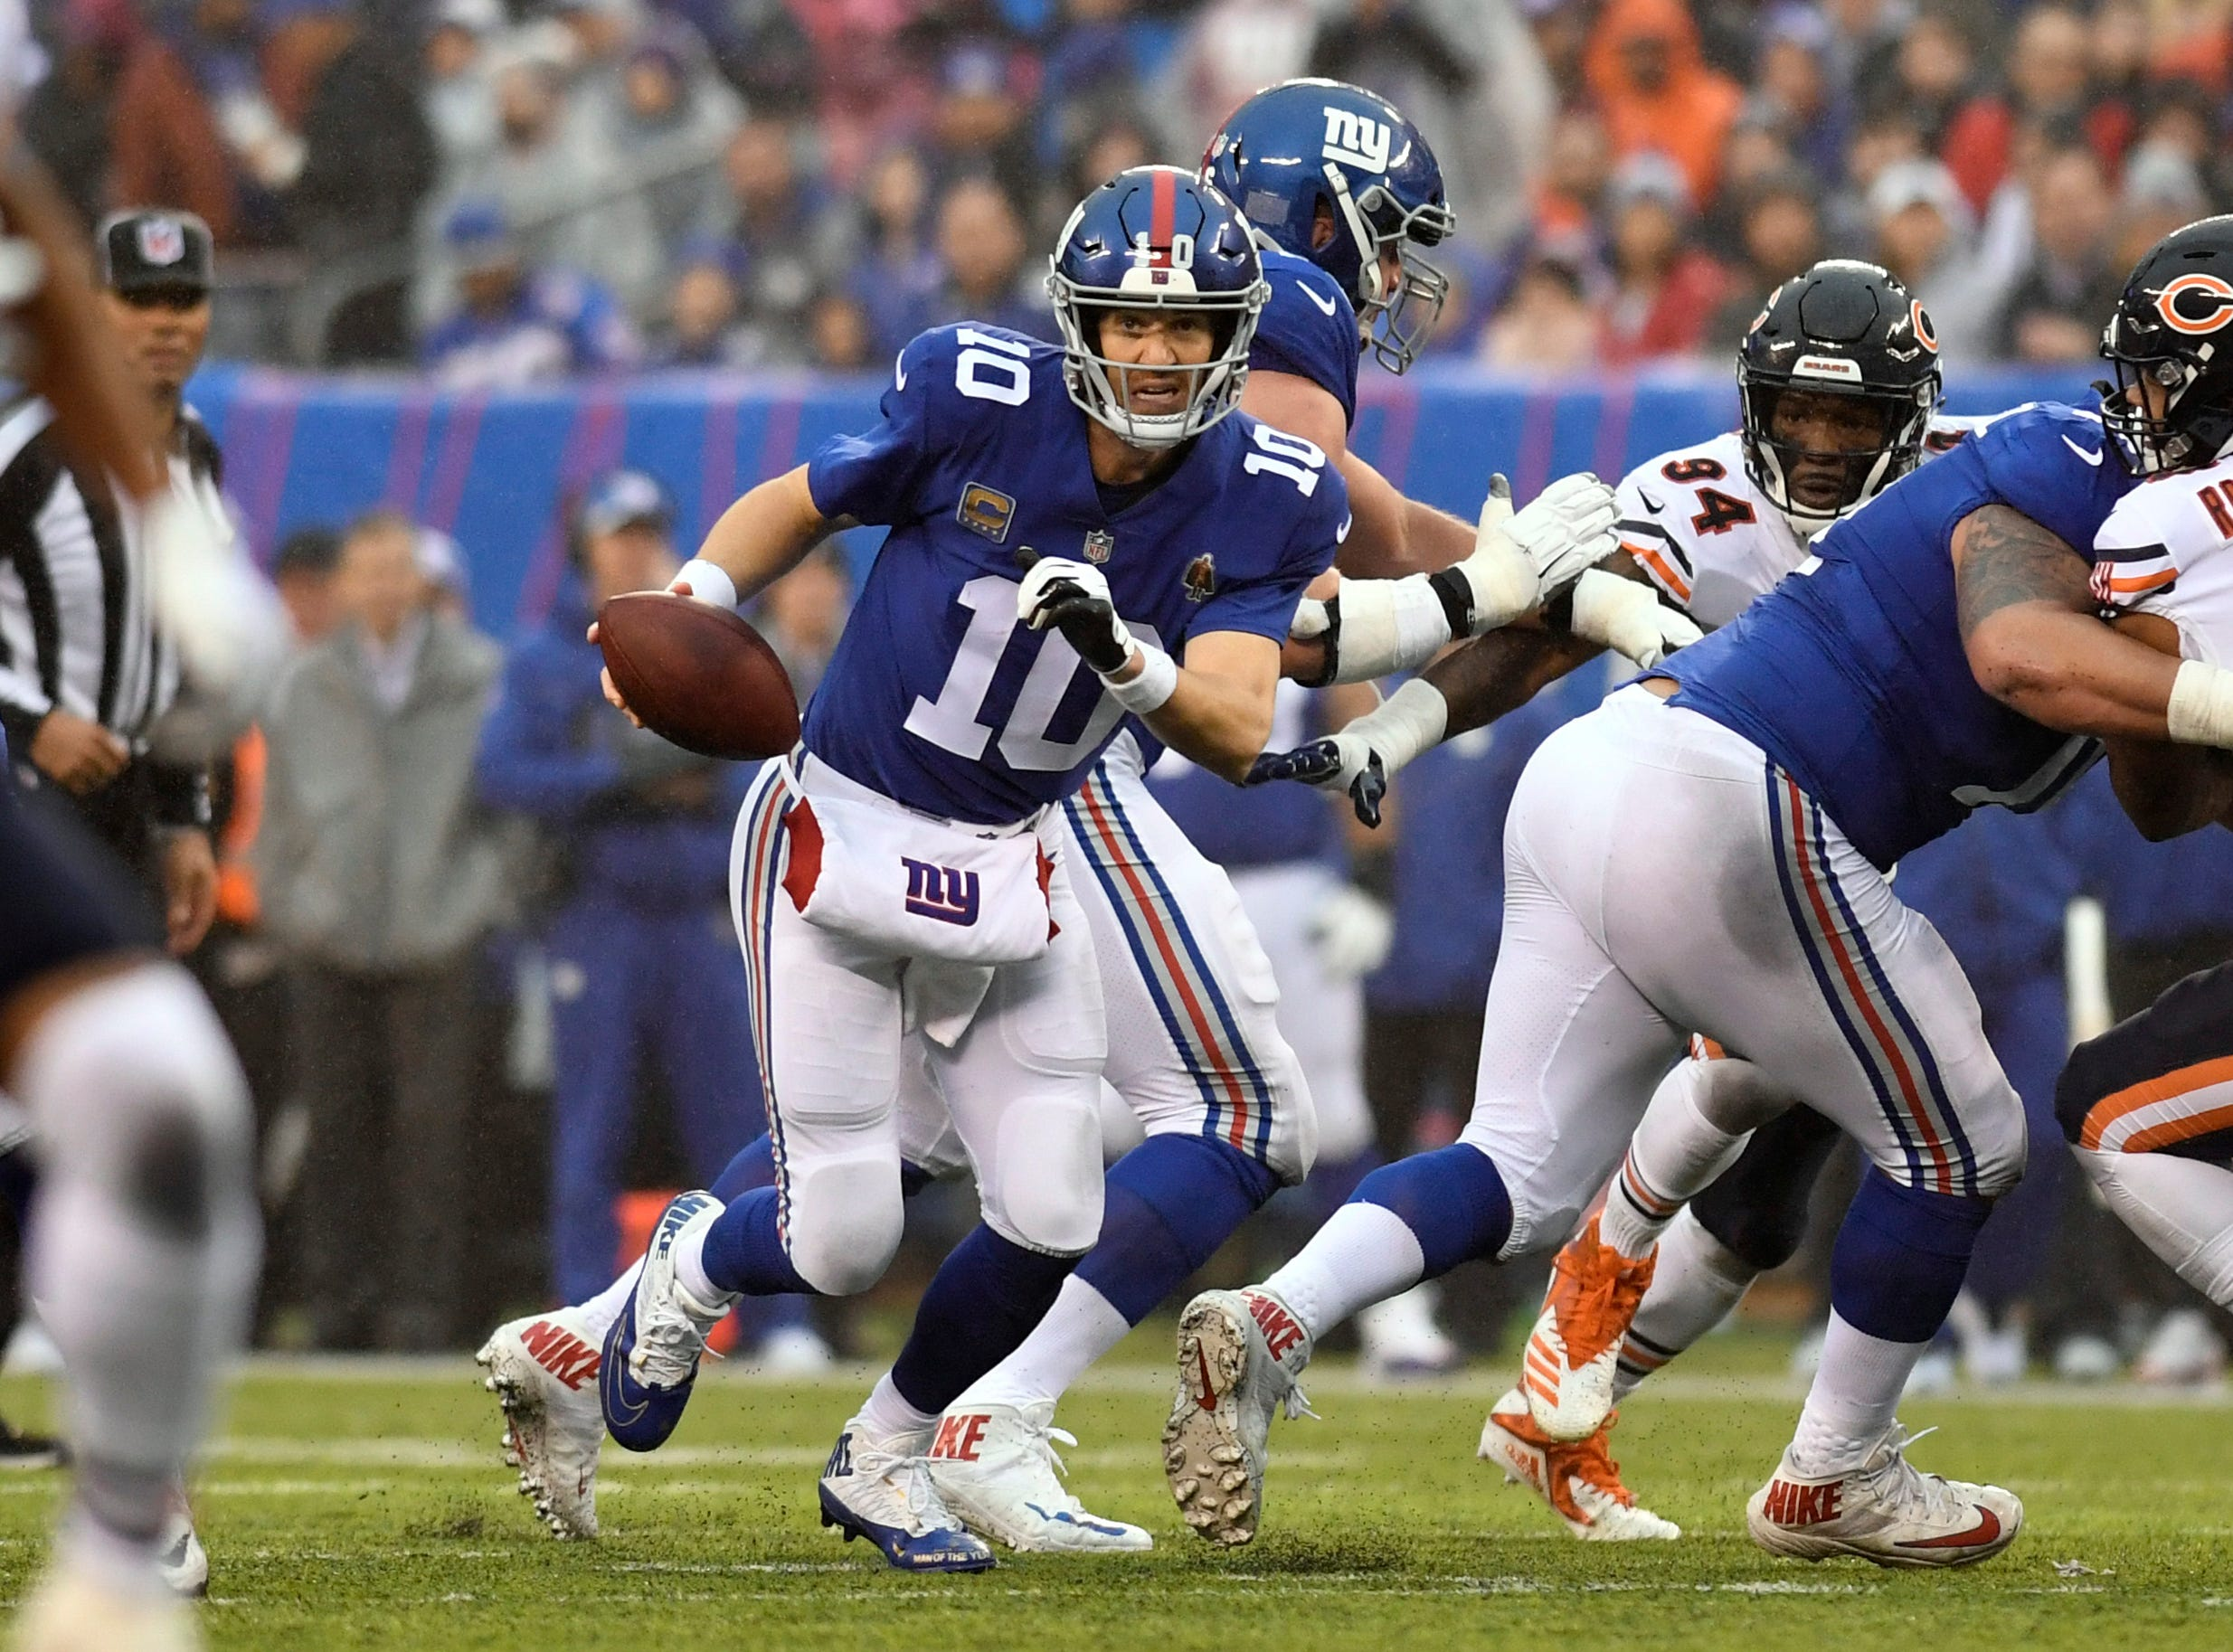 New York Giants quarterback Eli Manning (10) scrambles in the second half. The New York Giants defeat the Chicago Bears in overtime 30-27 on Sunday, Dec. 2, 2018, in East Rutherford.